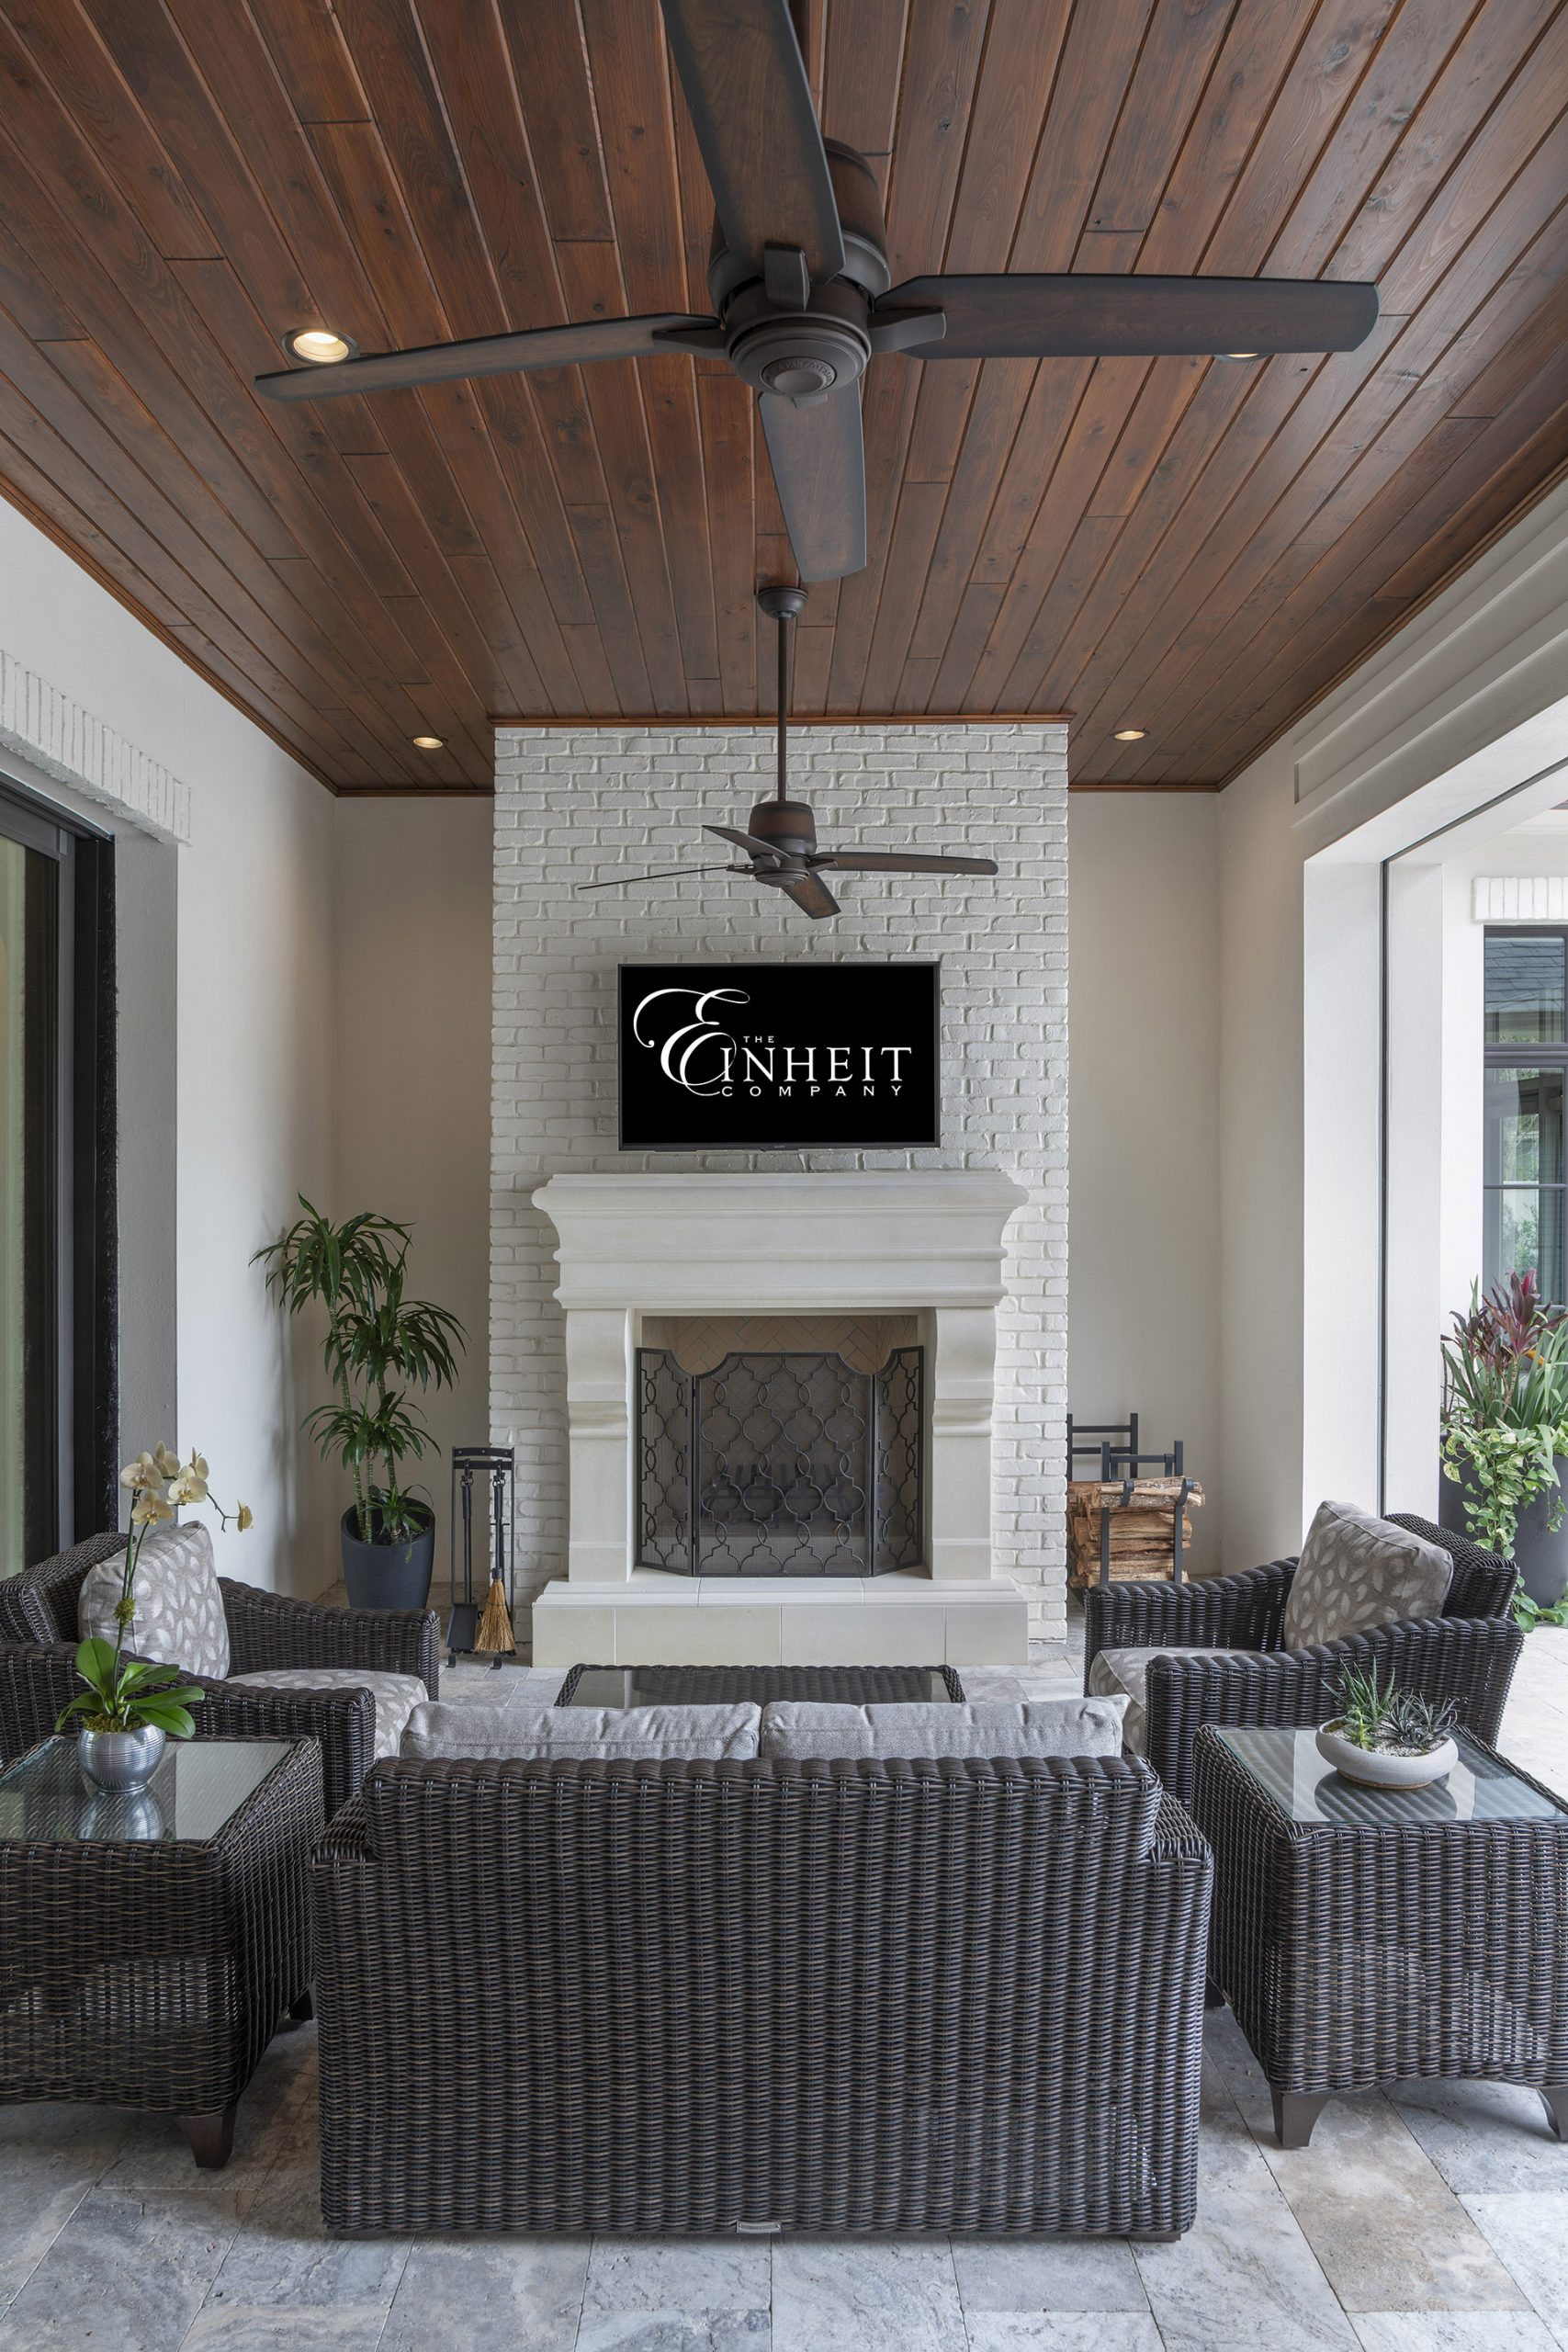 outdoor social space at custom home built by the Einheit Company in Orlando